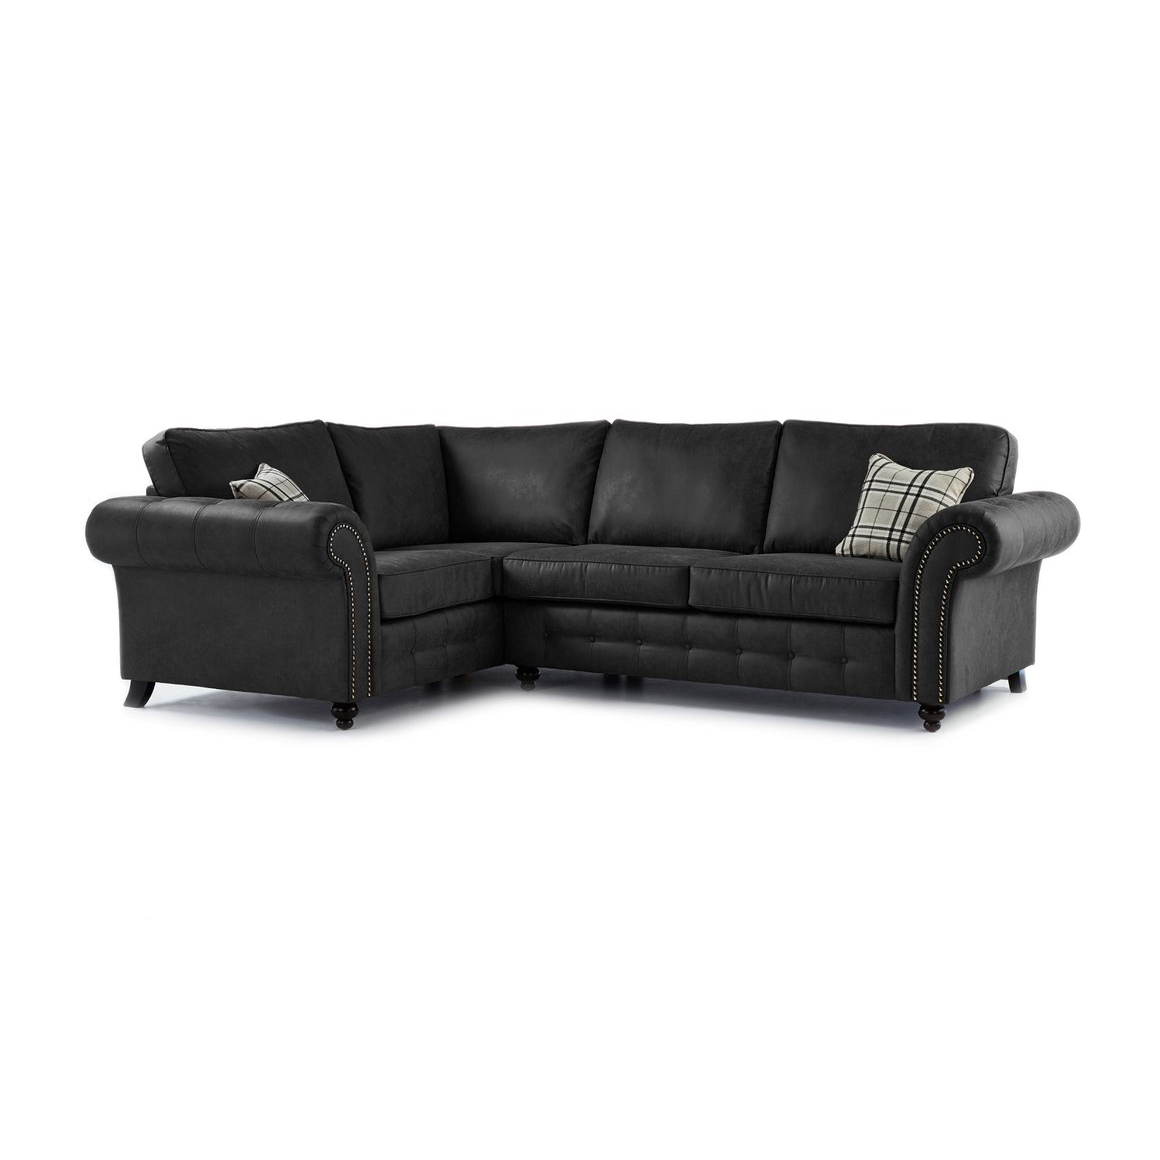 Oakland Faux Leather Left Hand Corner Sofa in Black